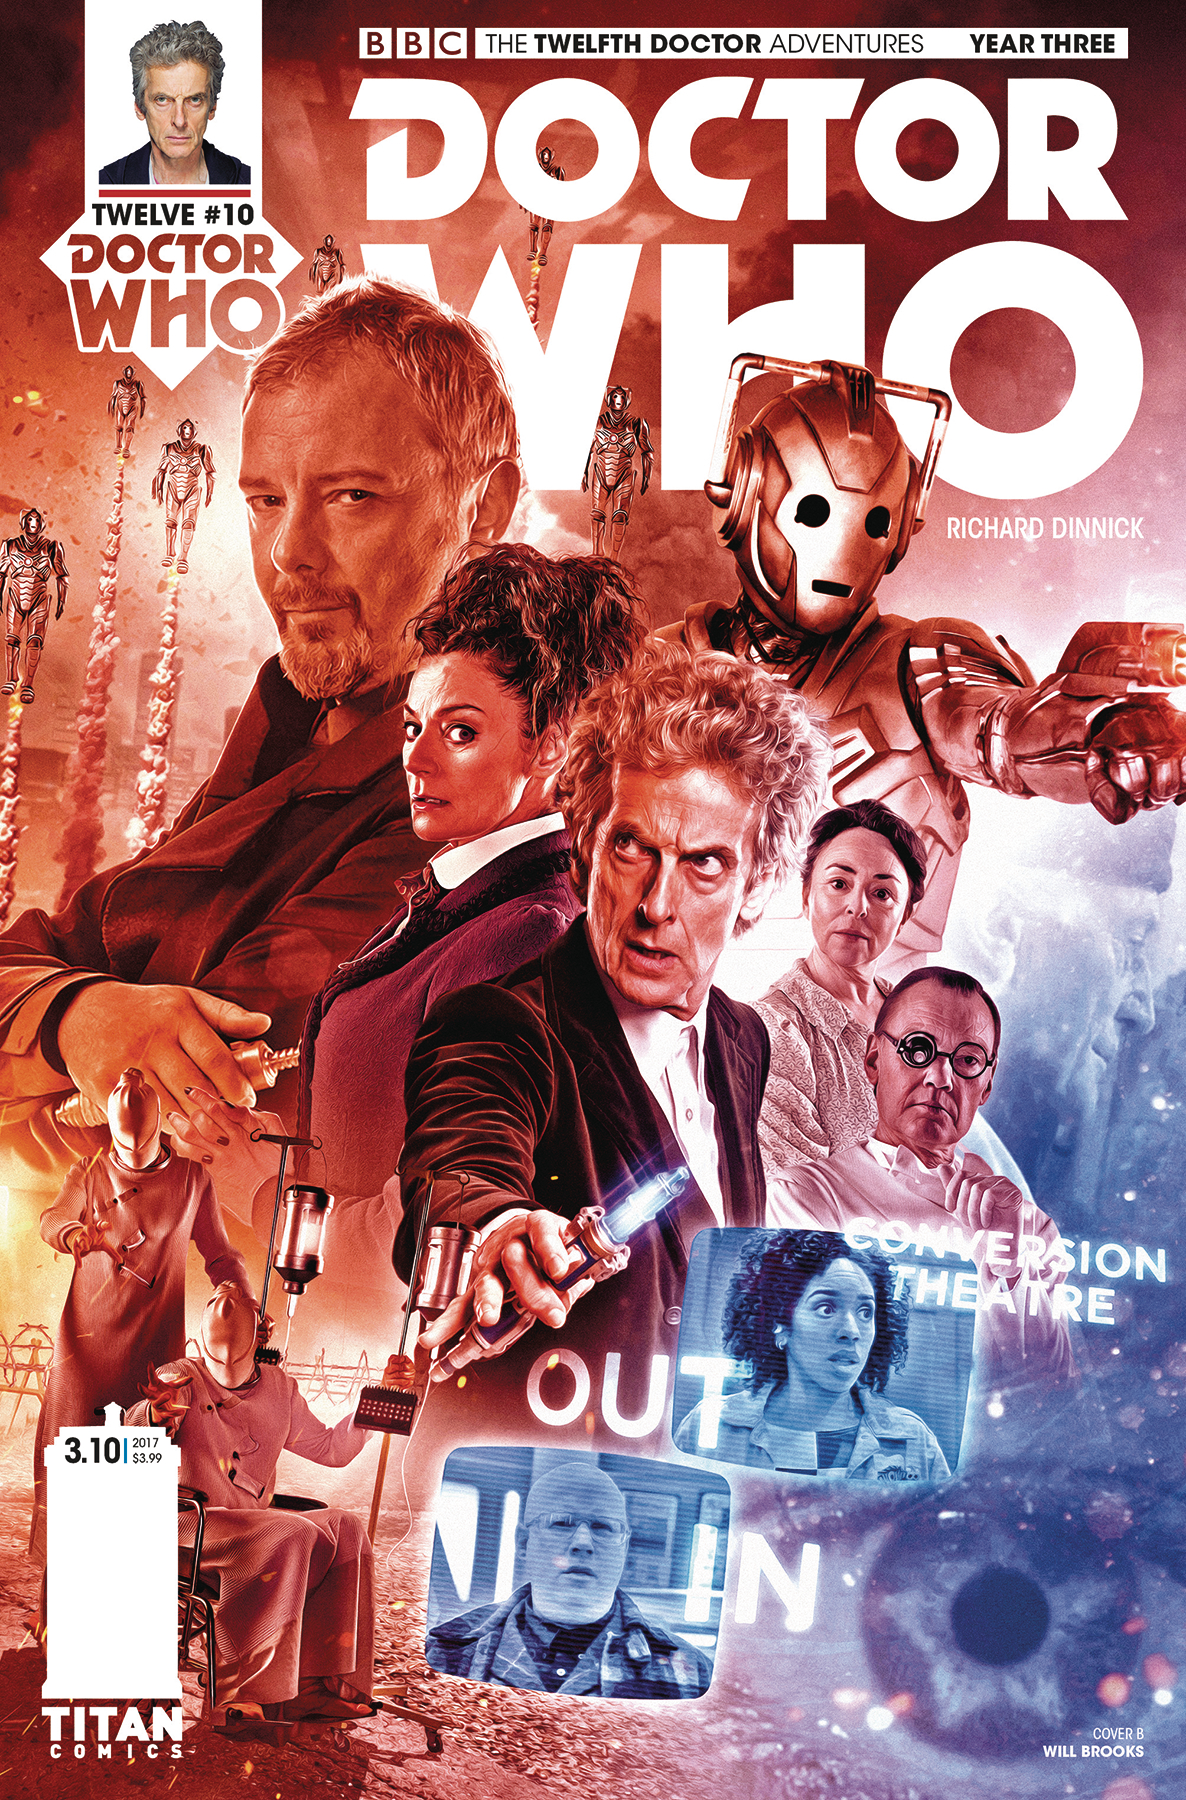 DOCTOR WHO 12TH YEAR THREE #10 CVR B PHOTO